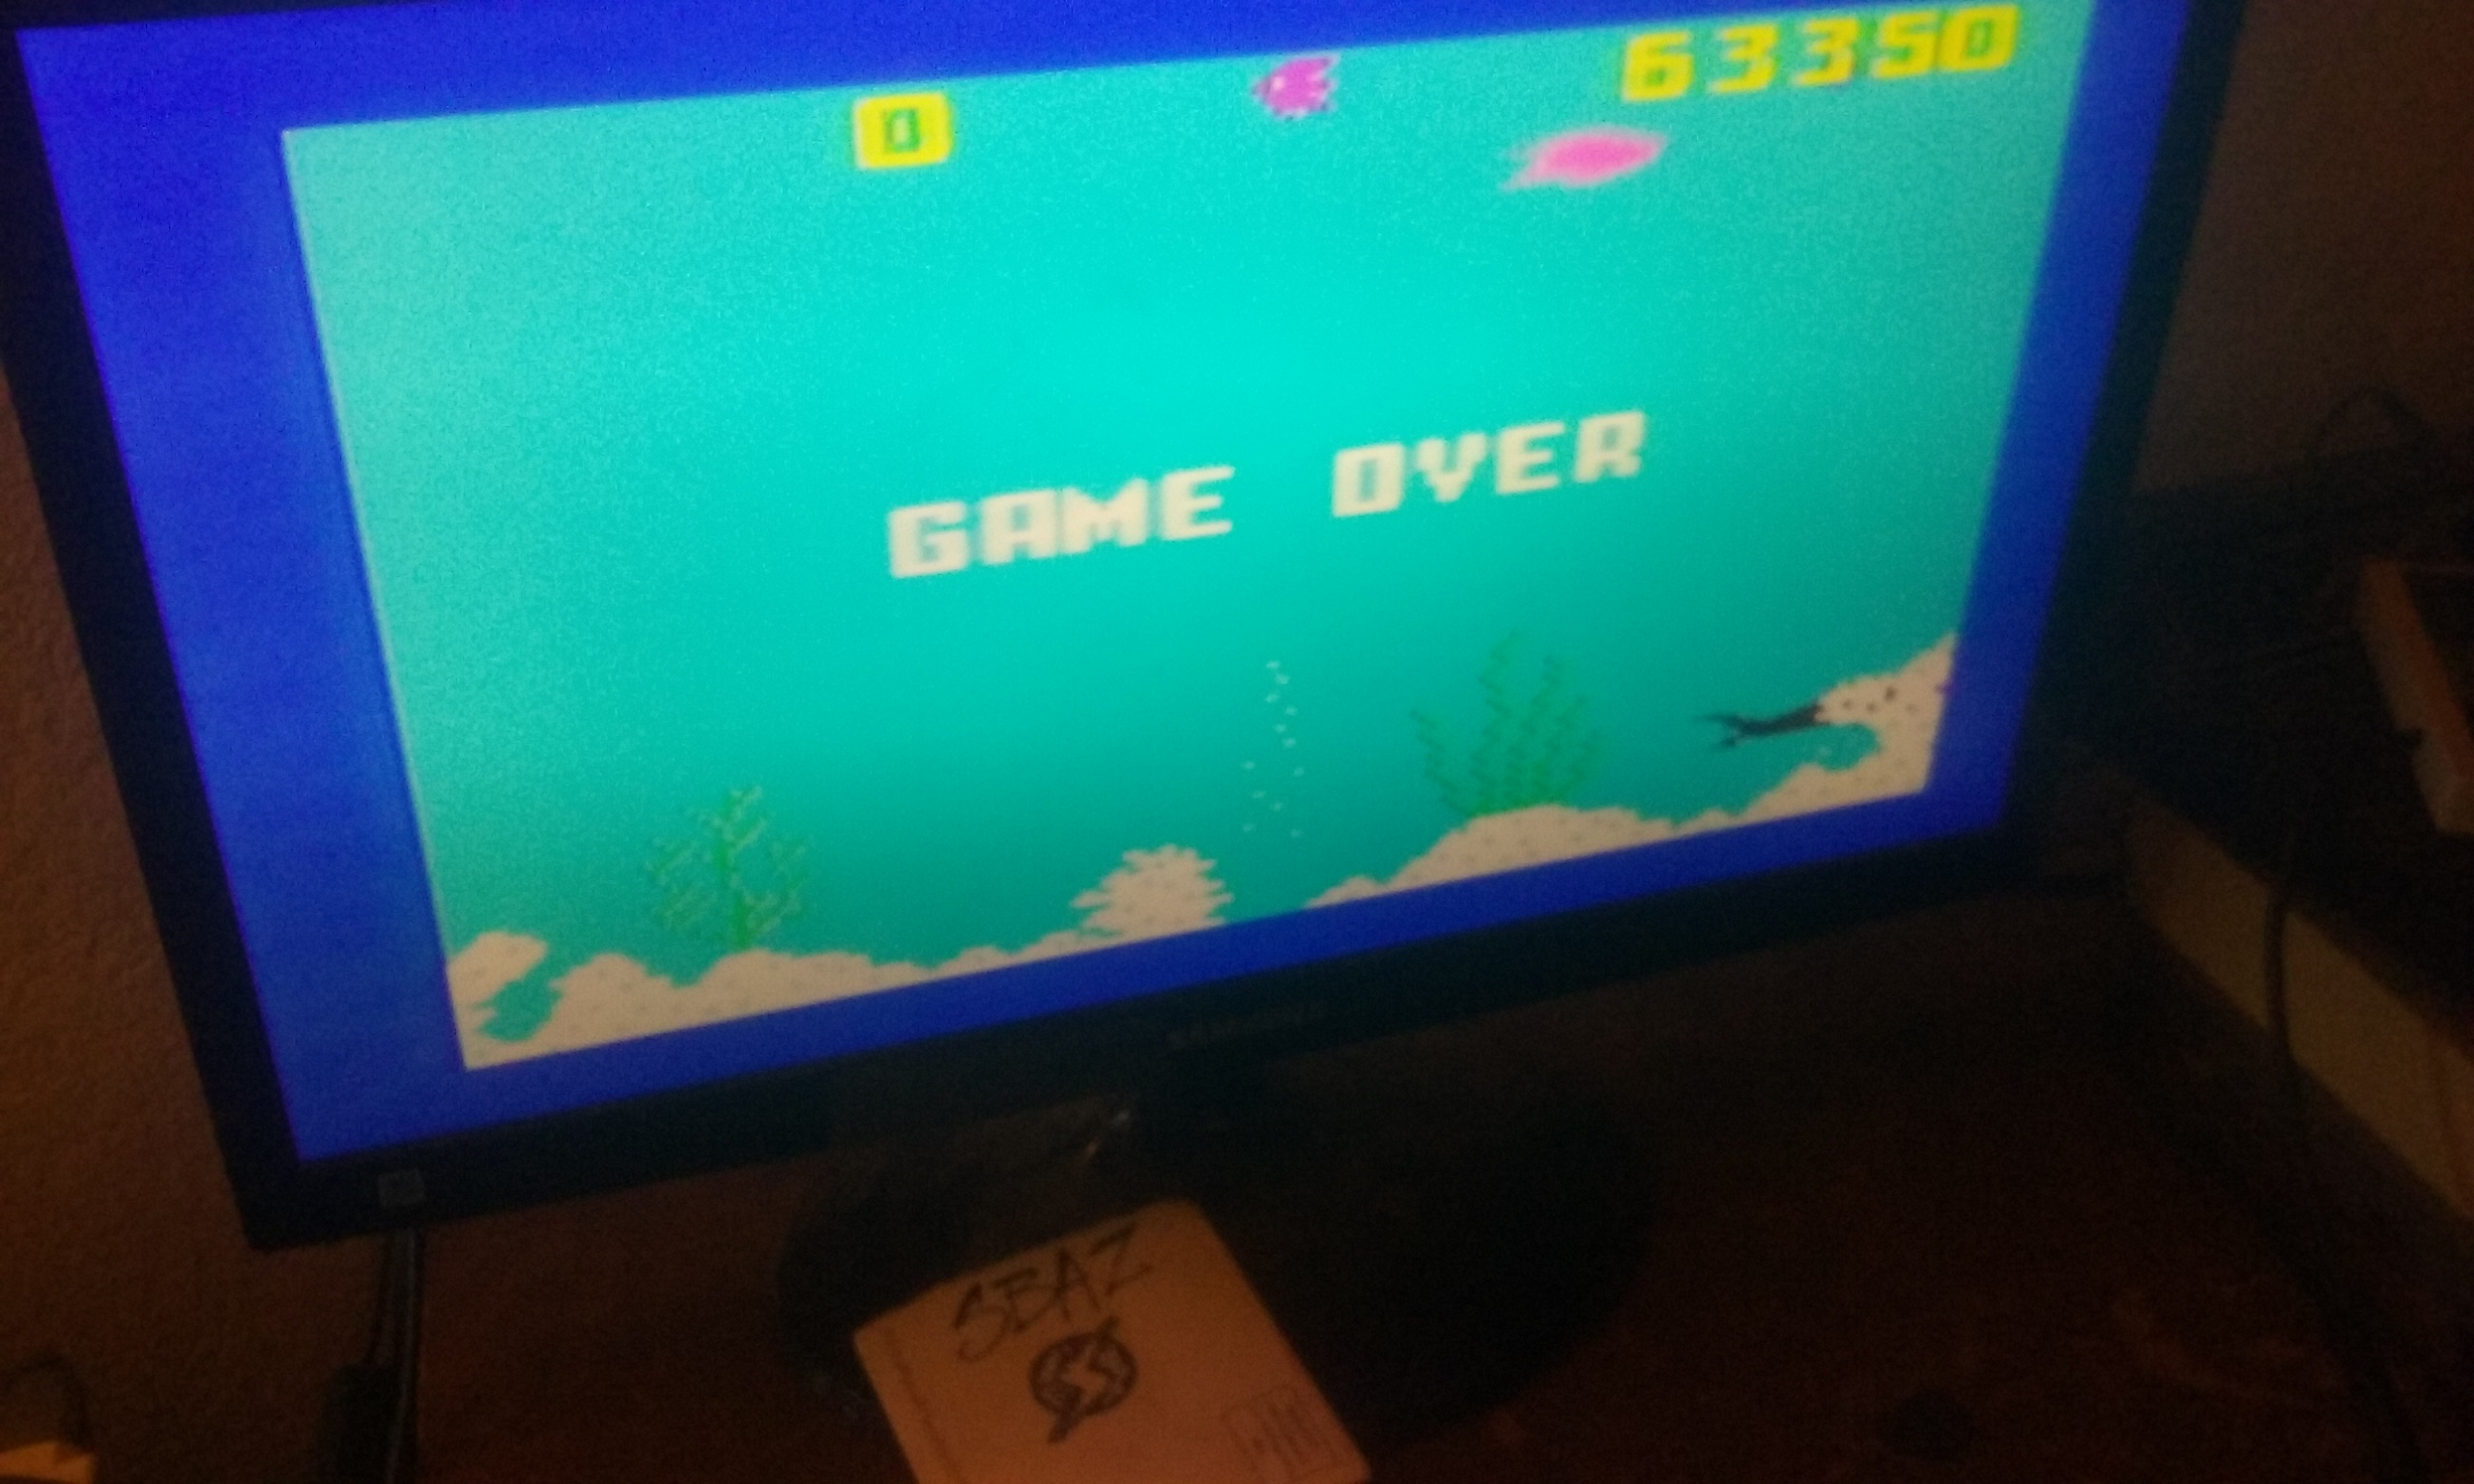 S.BAZ: Shark! Shark!: Normal Mode (Intellivision) 63,350 points on 2018-02-26 05:12:29